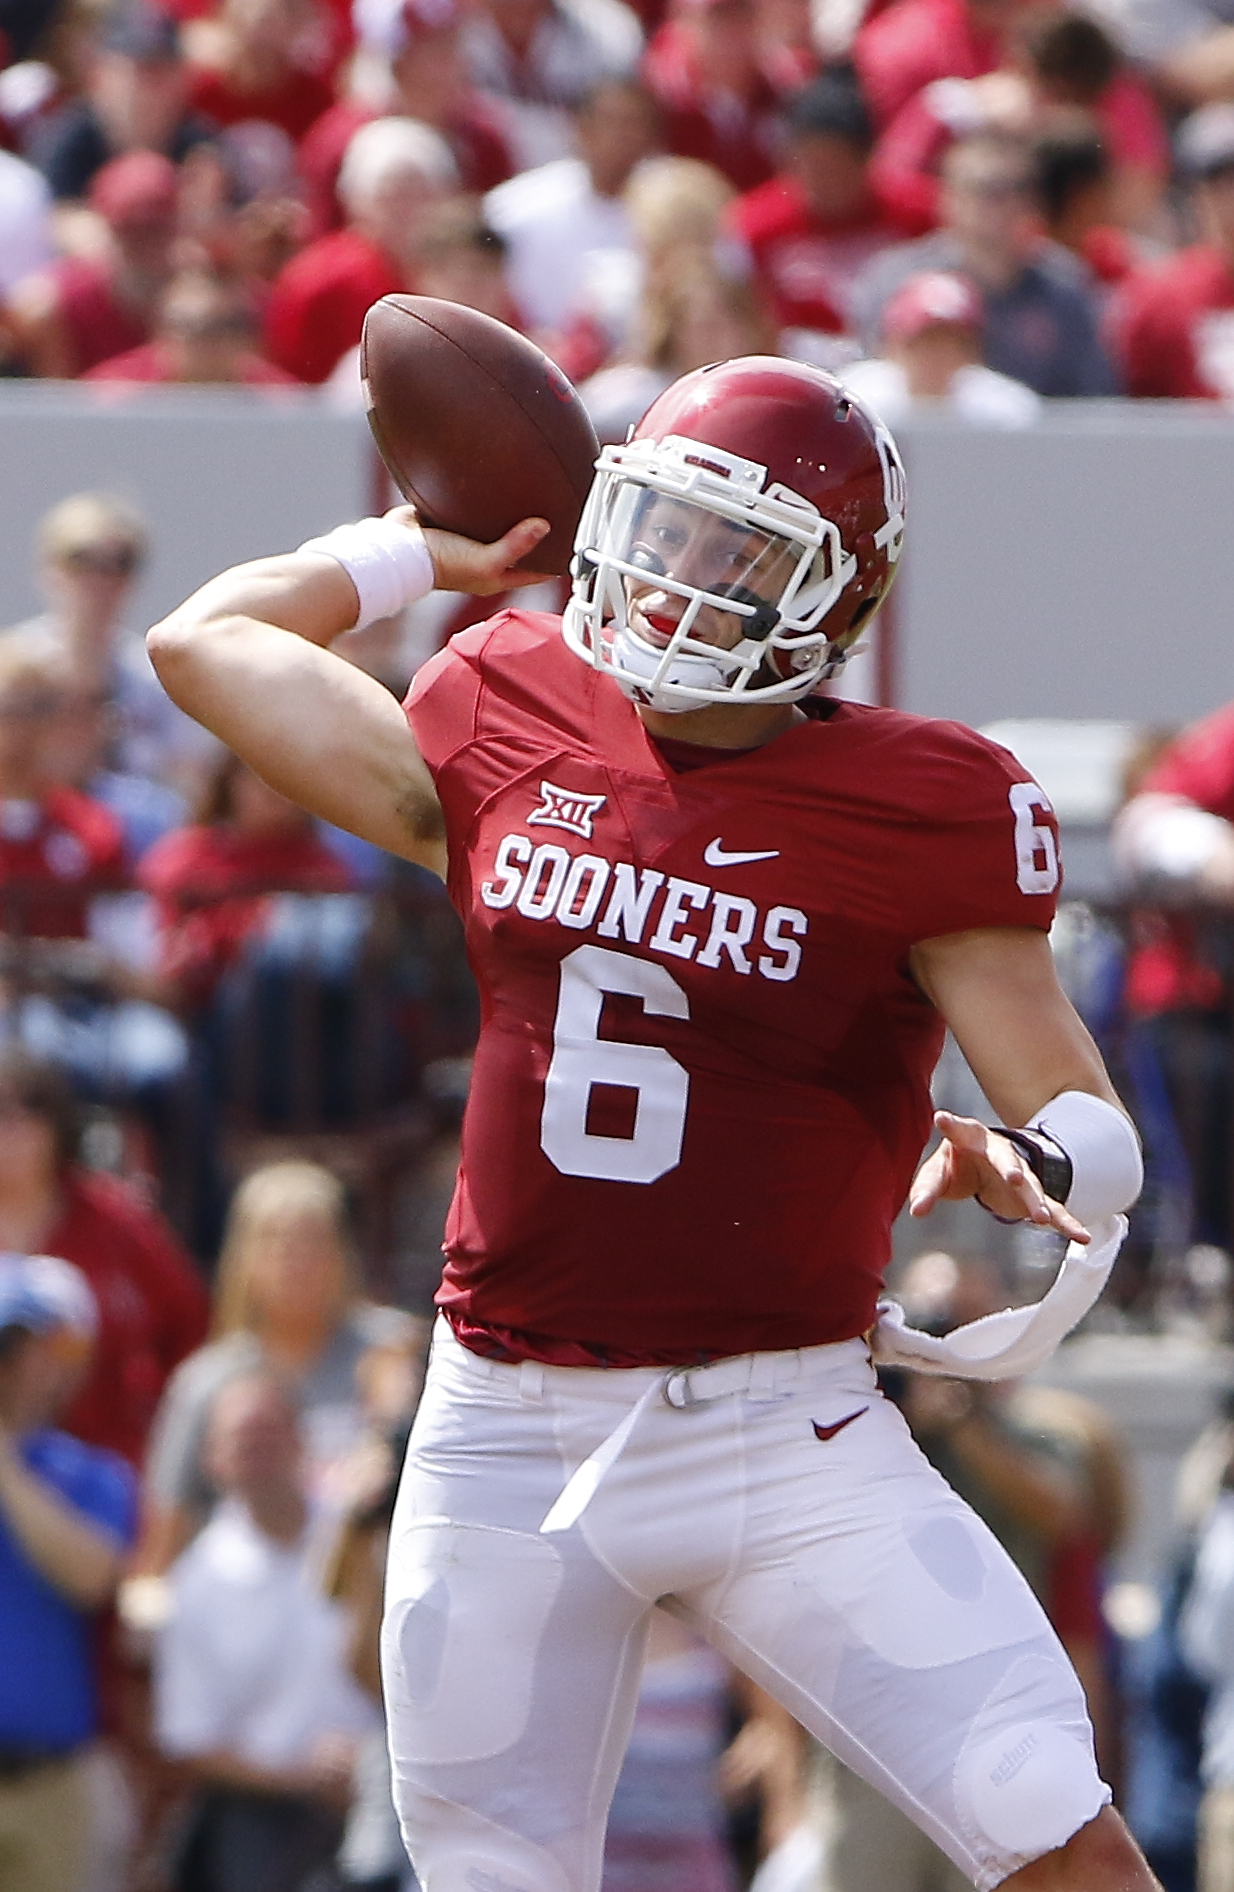 Oklahoma quarterback Baker Mayfield (6) passes against Tulsa during the second quarter of an NCAA college football game in Norman, Okla., Saturday, Sept. 19, 2015. (AP Photo/Alonzo Adams)